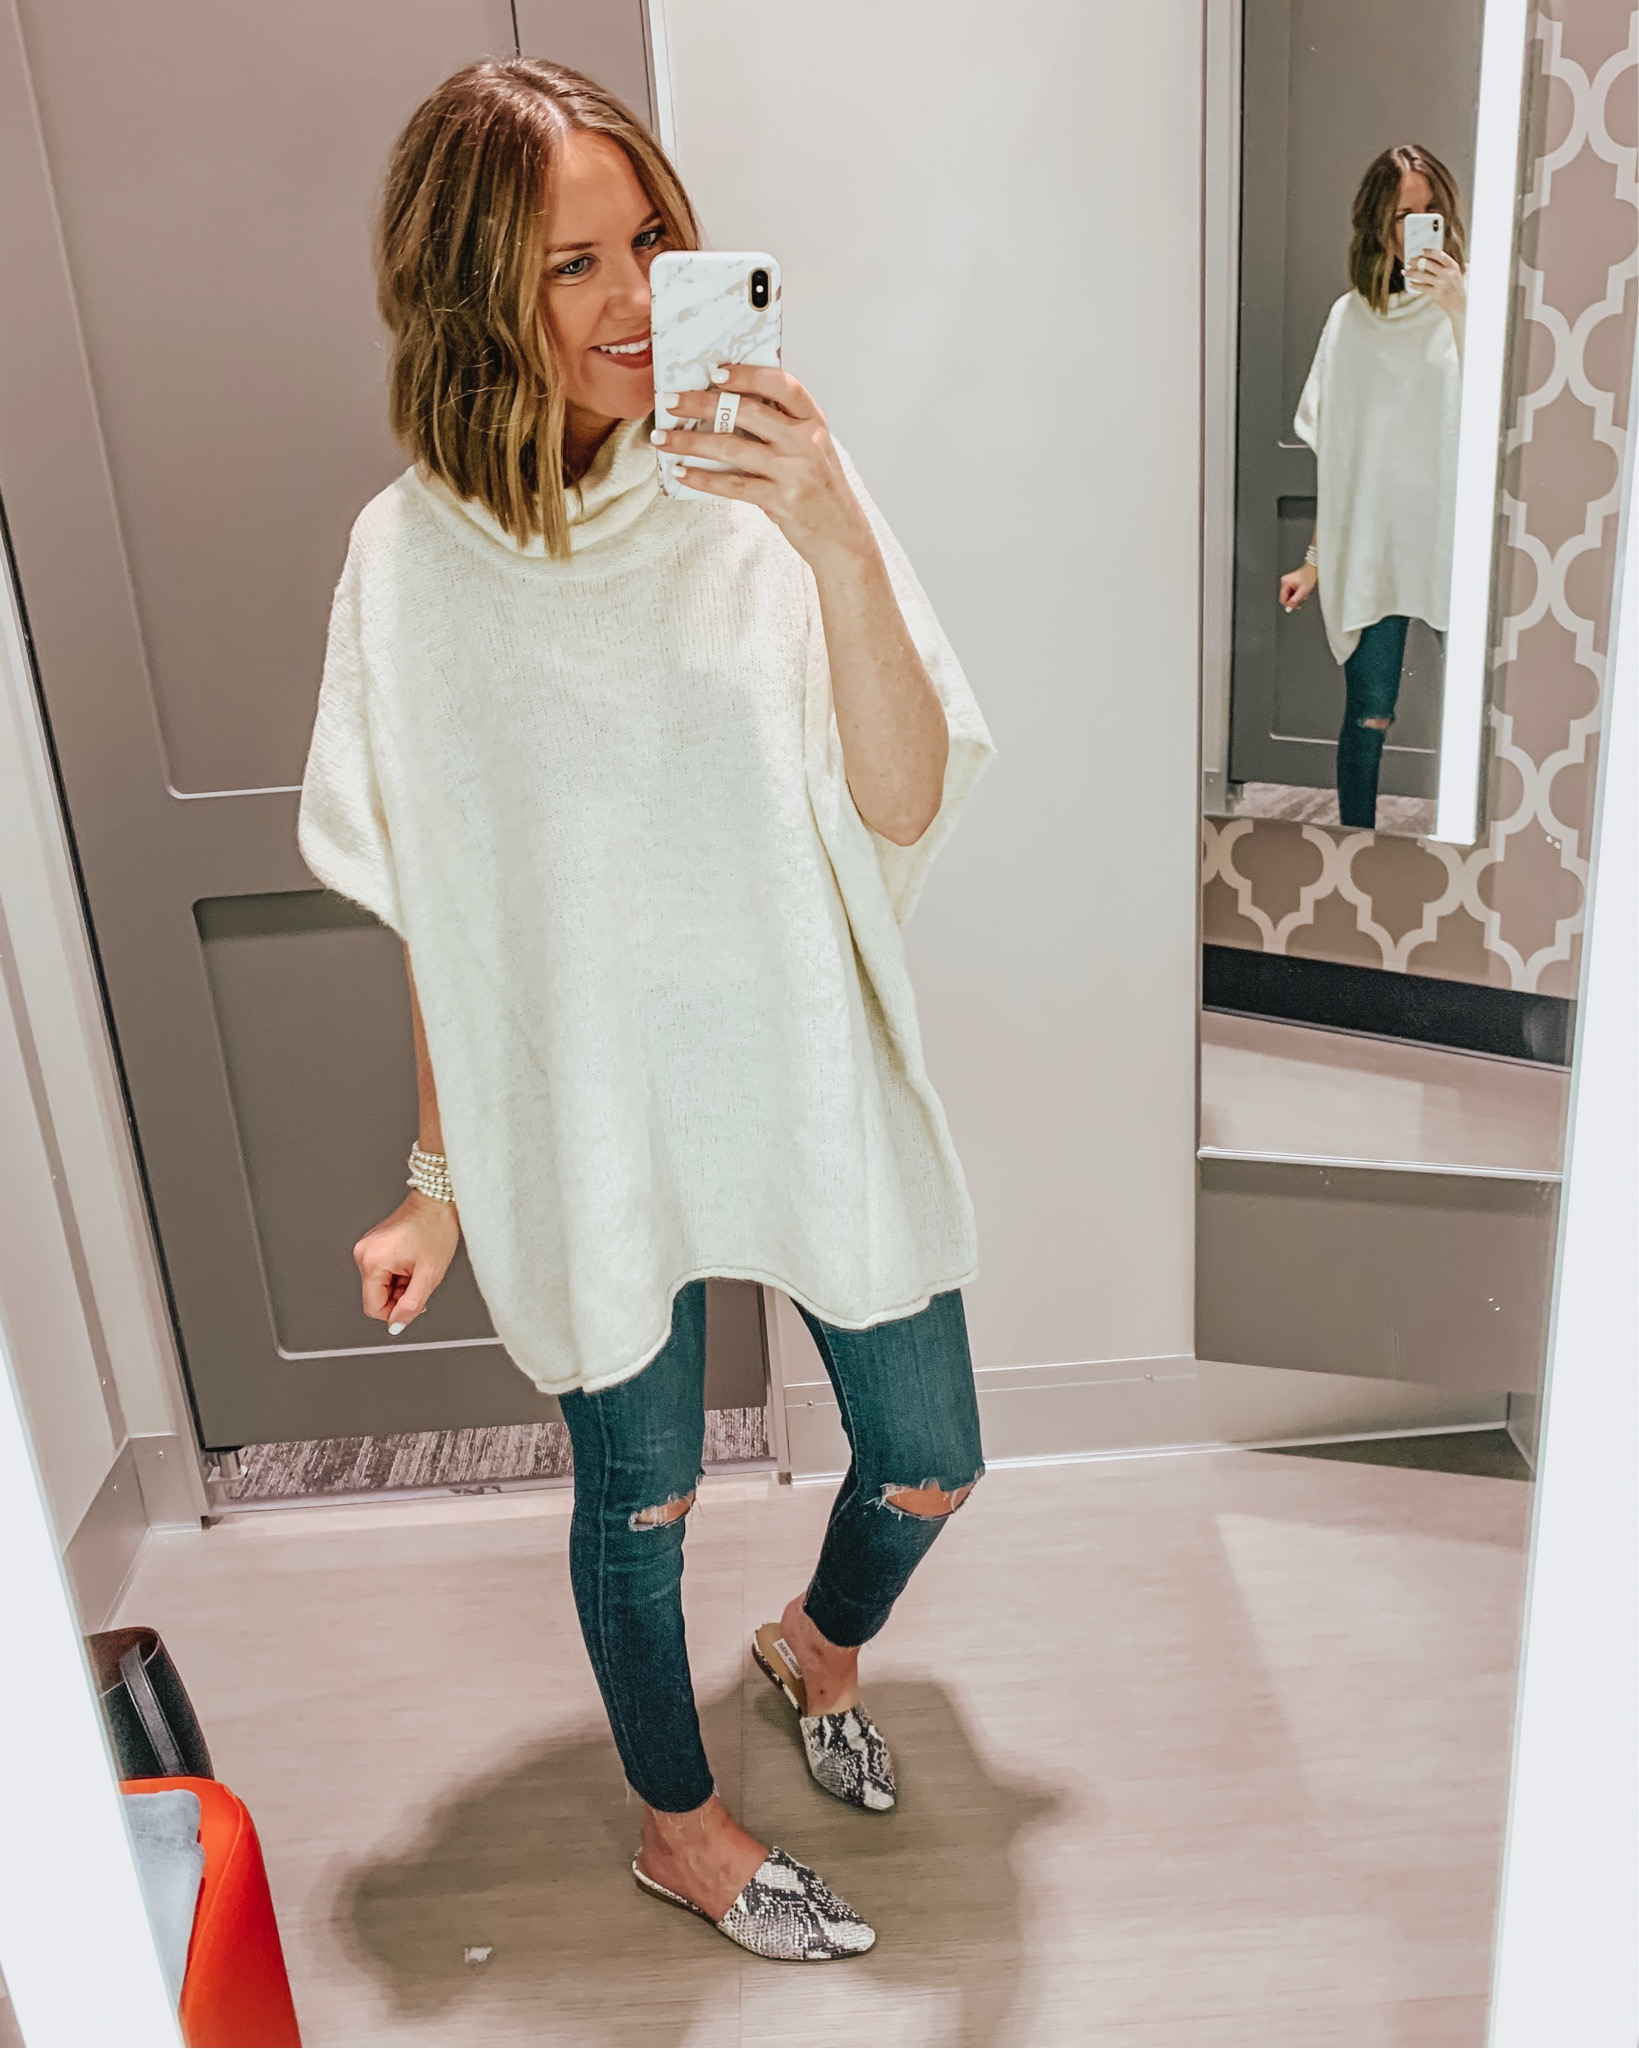 Target fall fashion preview 2019, Target poncho sweater, snakeskin flats